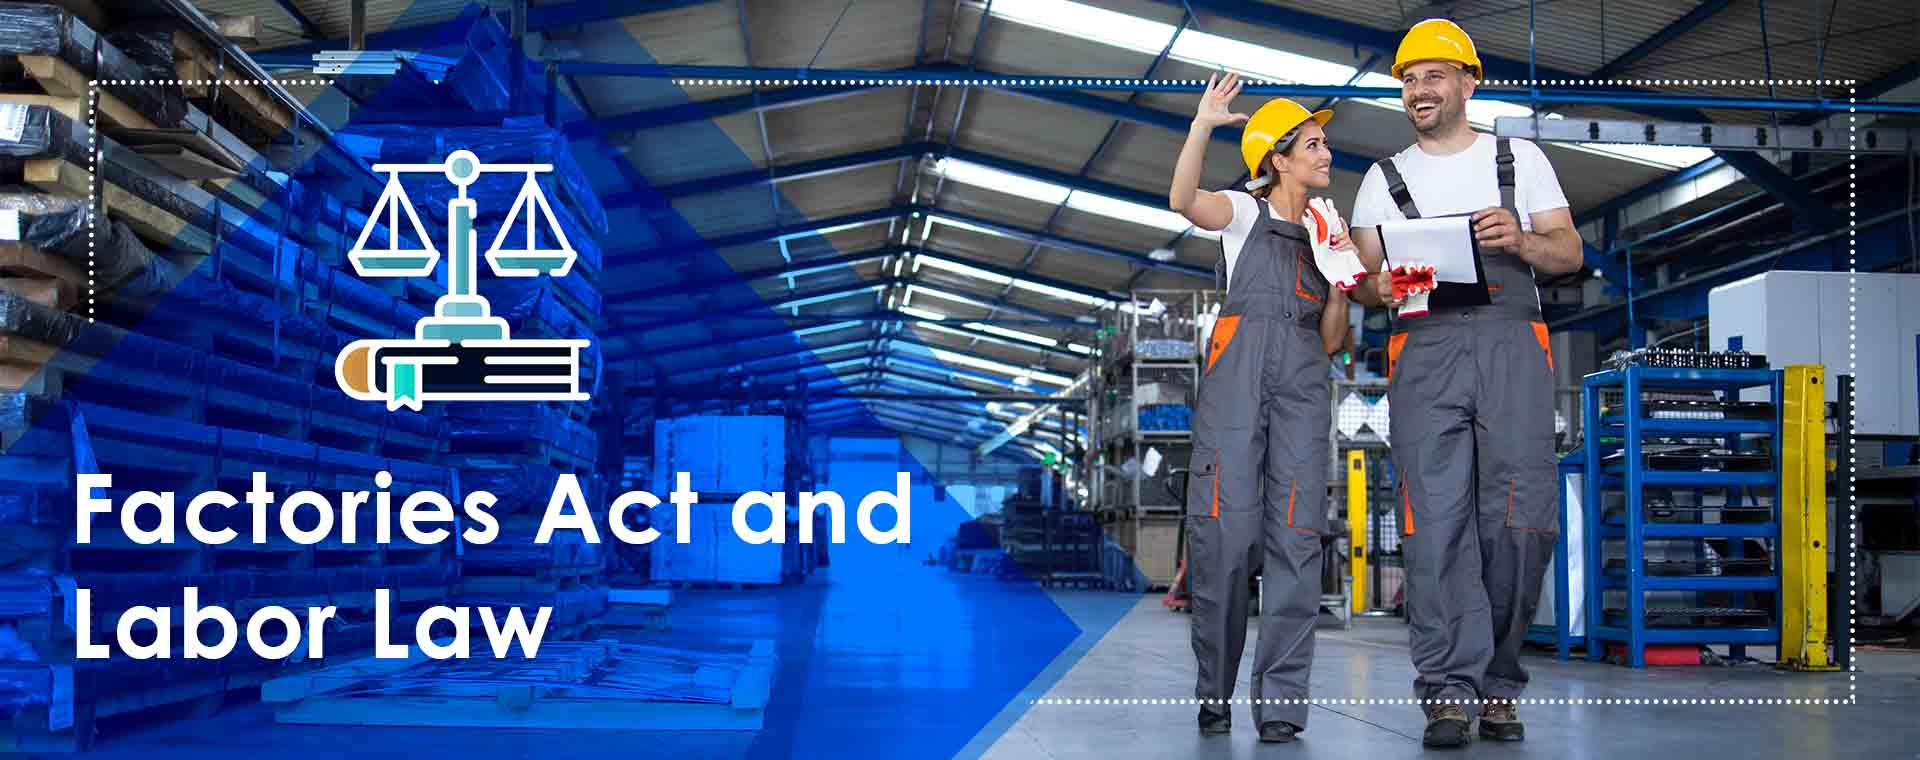 Factories Act and Labor law